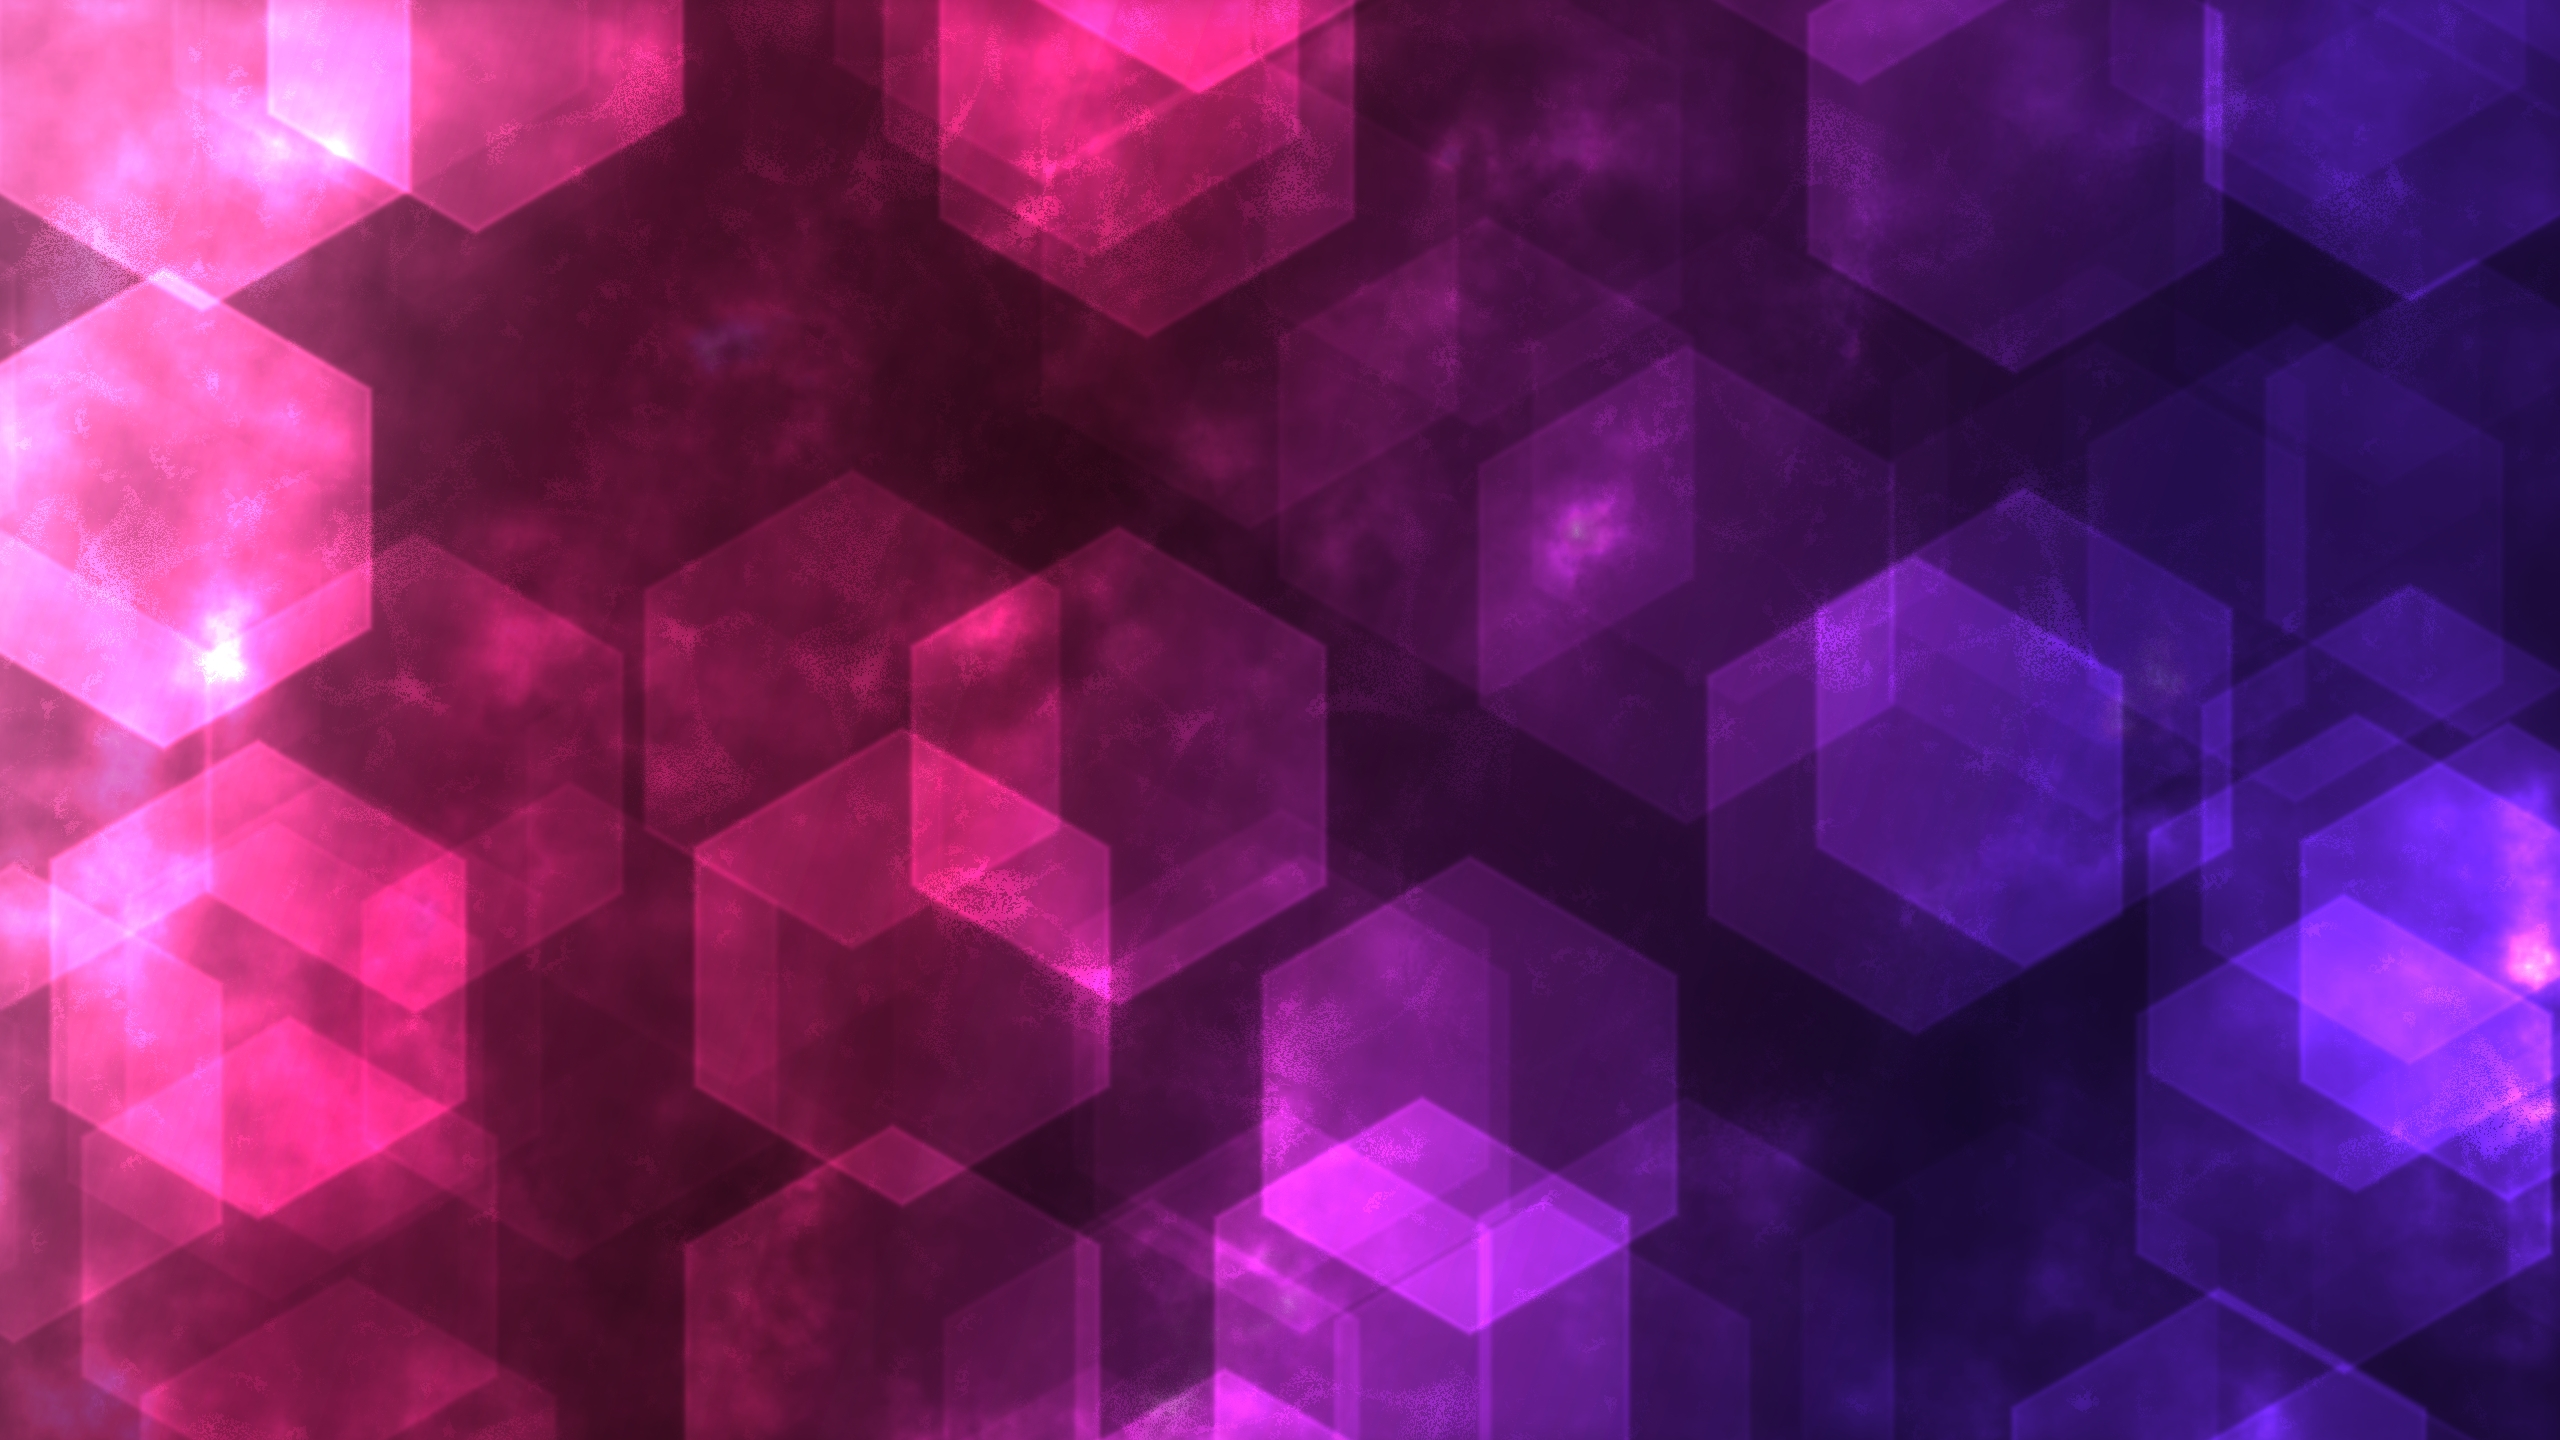 3d Wallpaper 480x800 Wallpaper Bokeh Hexagonal Shape Geometry Reflections